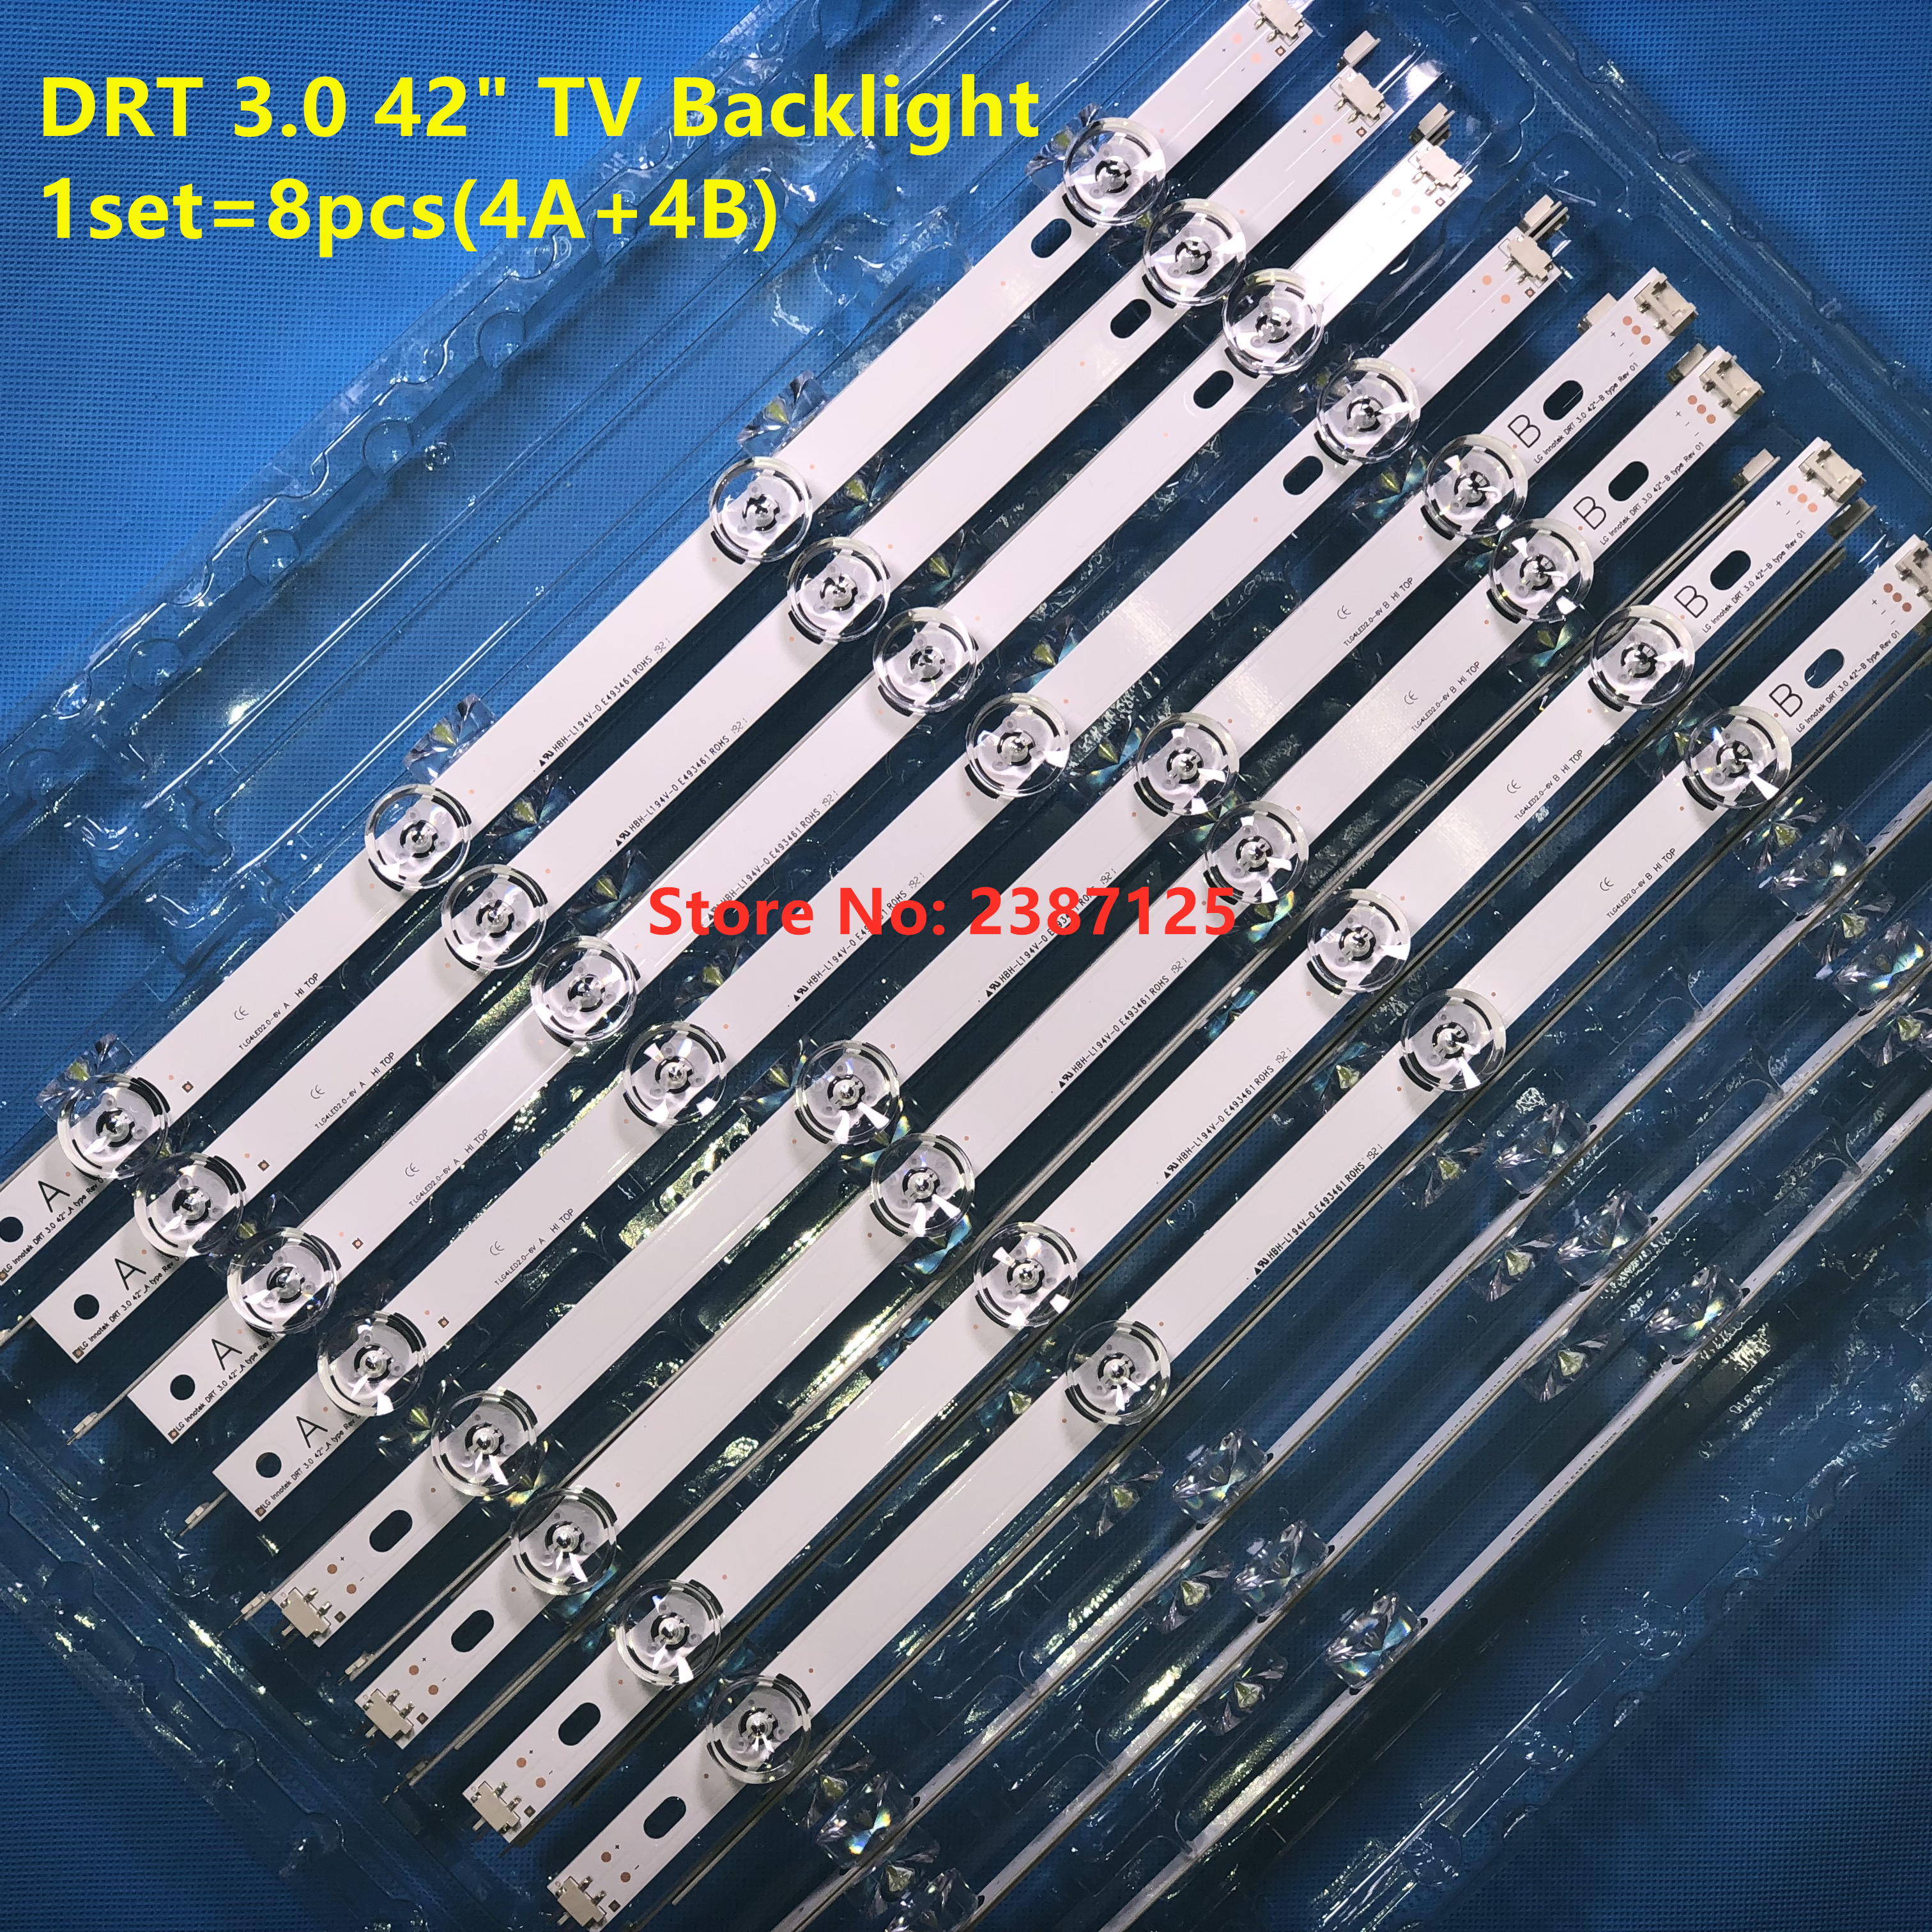 100% New-Original 8 PCS/set LED Backlight Strip Bar For LG LC420DUE 42LB3910 INNOTEK DRT 3.0 42 Inch A B 6916L-1709A 6916L-1710A